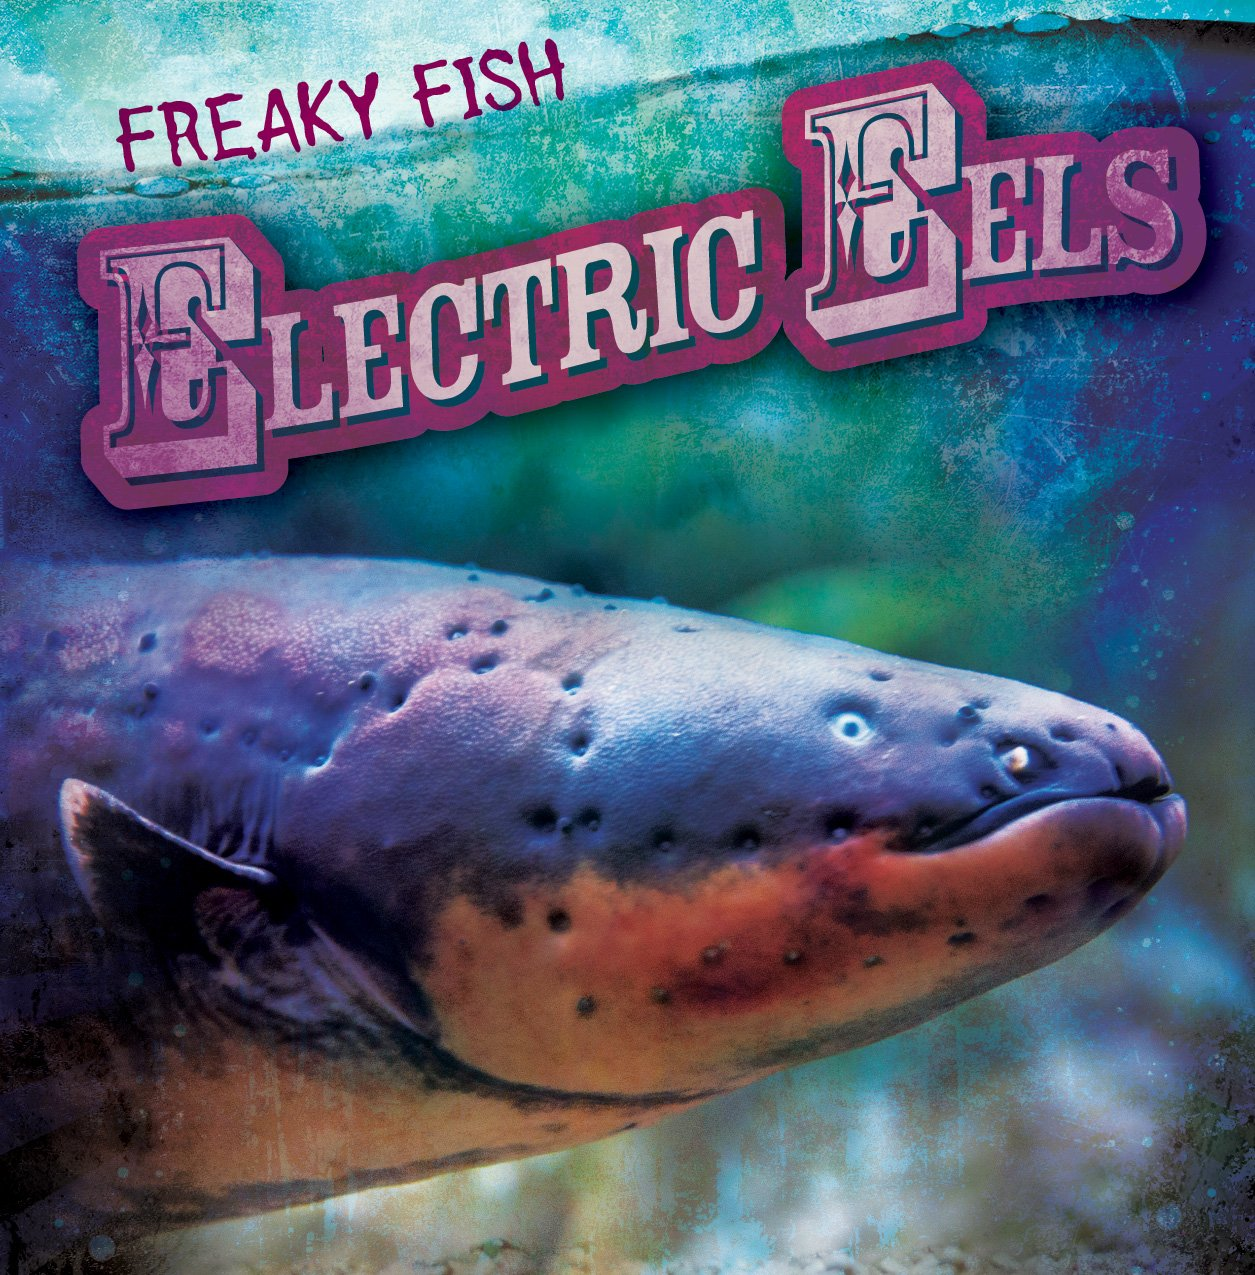 Buy Electric Eels (Freaky Fish) Book Online at Low Prices in India ...